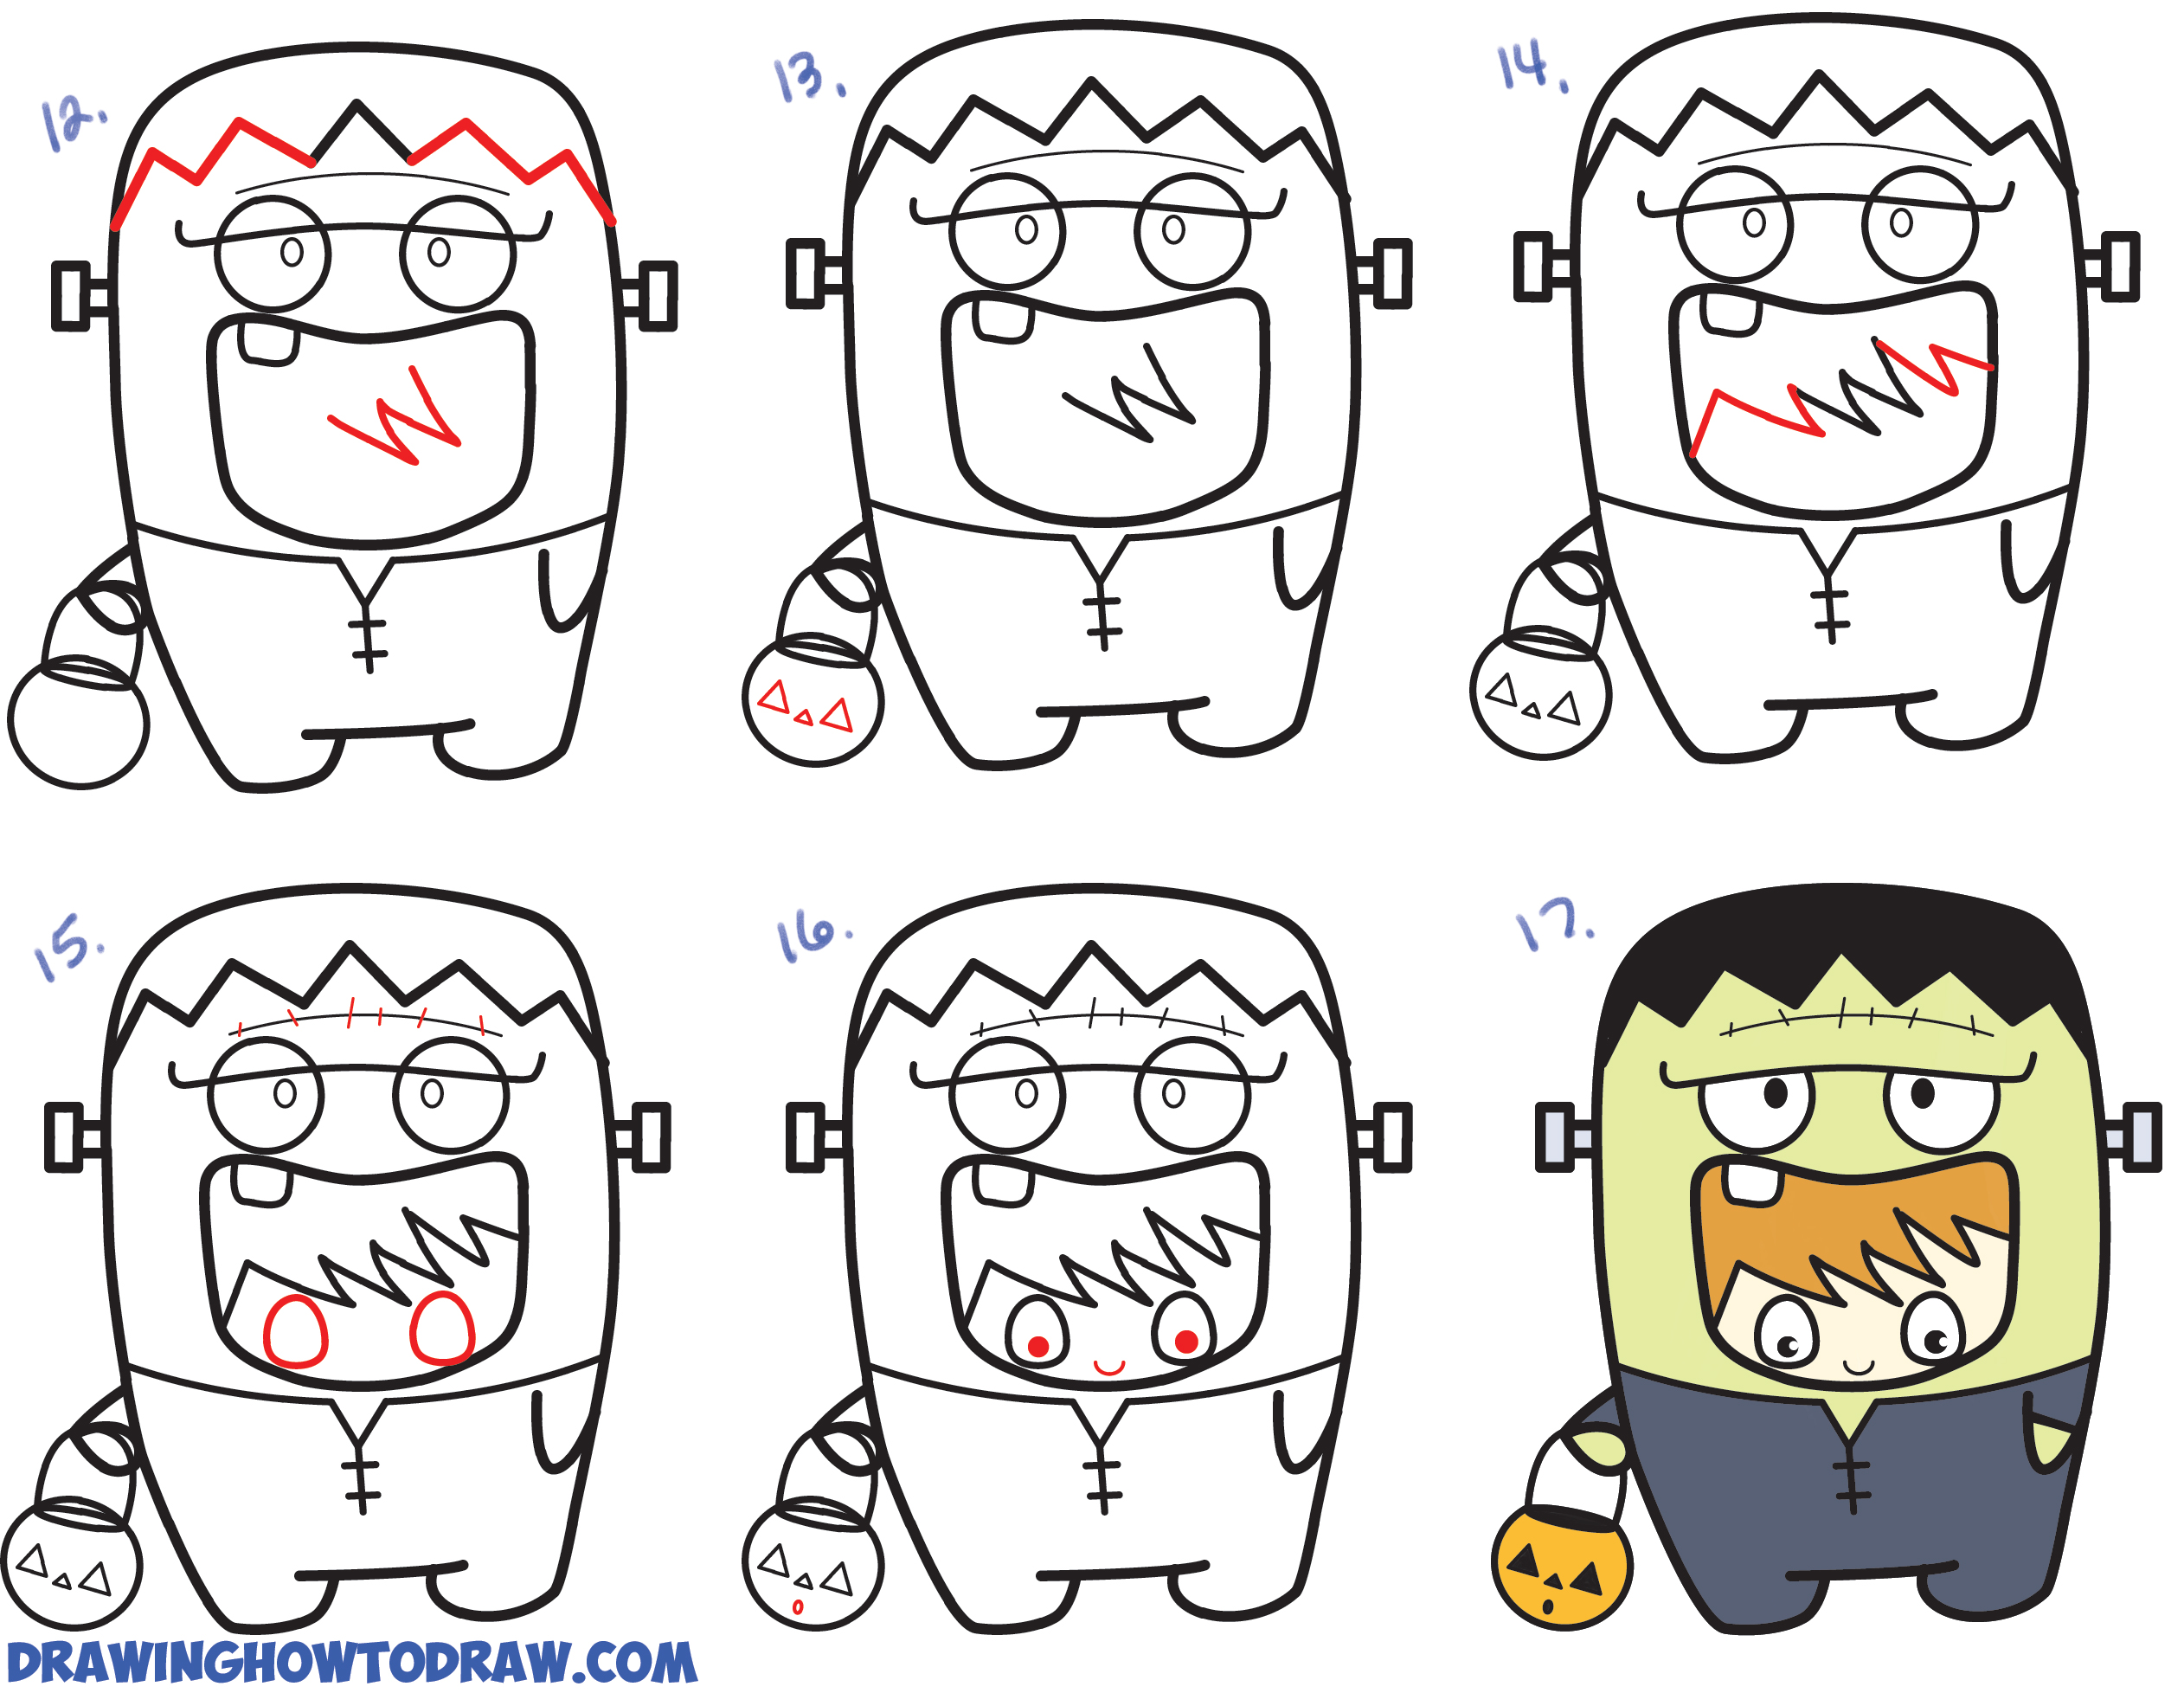 Learn How to Draw a Kid in a Halloween Frankenstein Costume (Cute Kawaii) Simple Steps Drawing Lesson for Children & Beginners